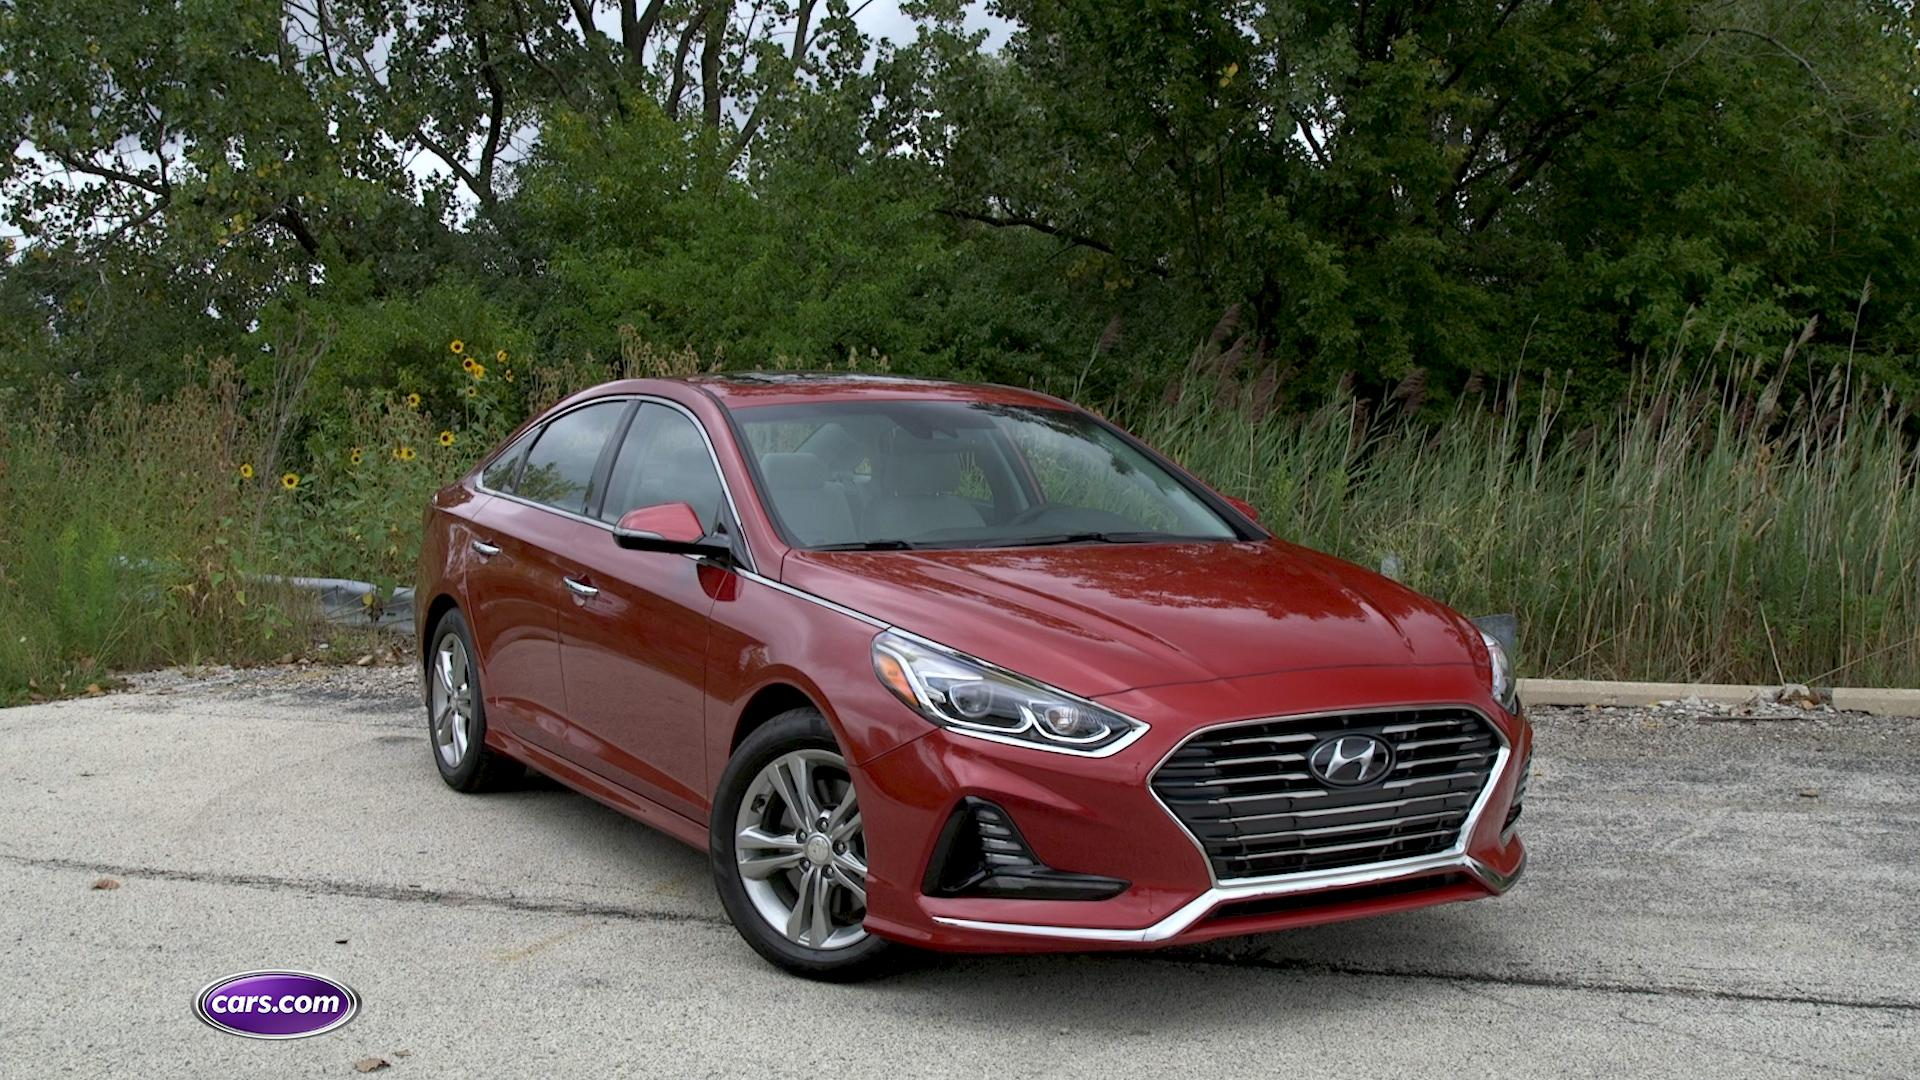 Video: 2018 Hyundai Sonata: First Drive Review